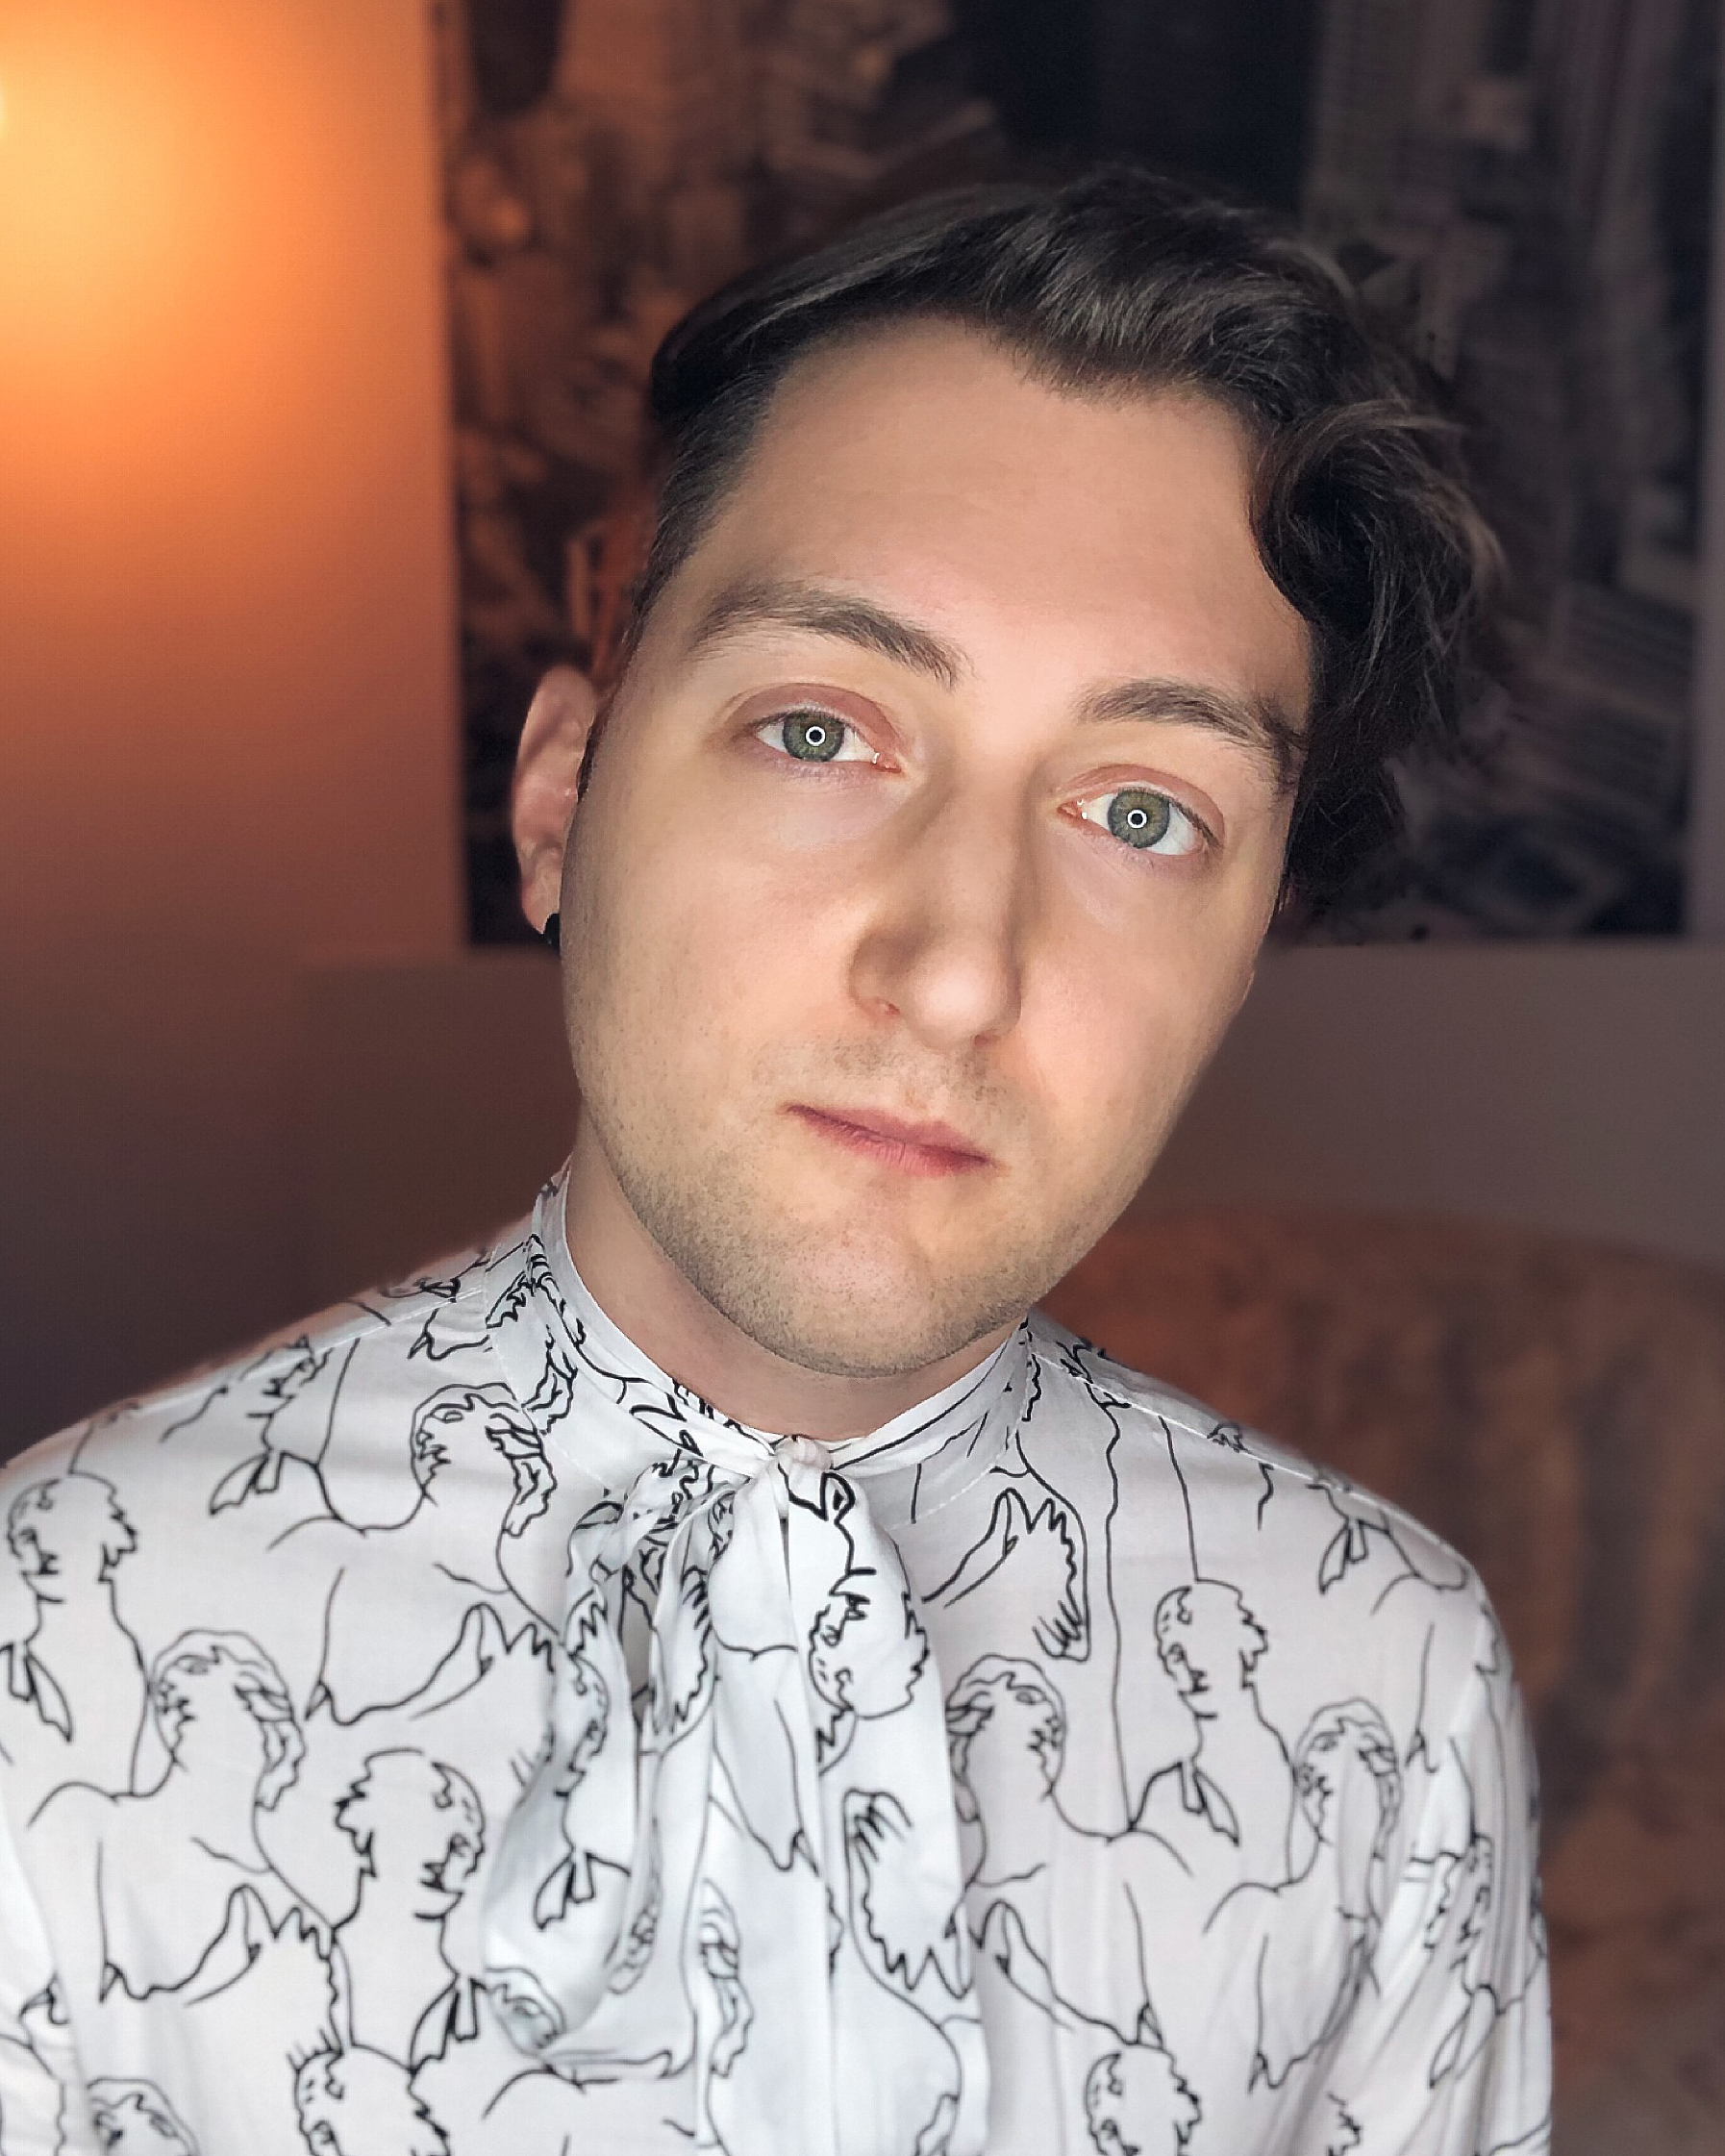 A picture of James Aries looking pensive, wearing a white/black patterned shirt